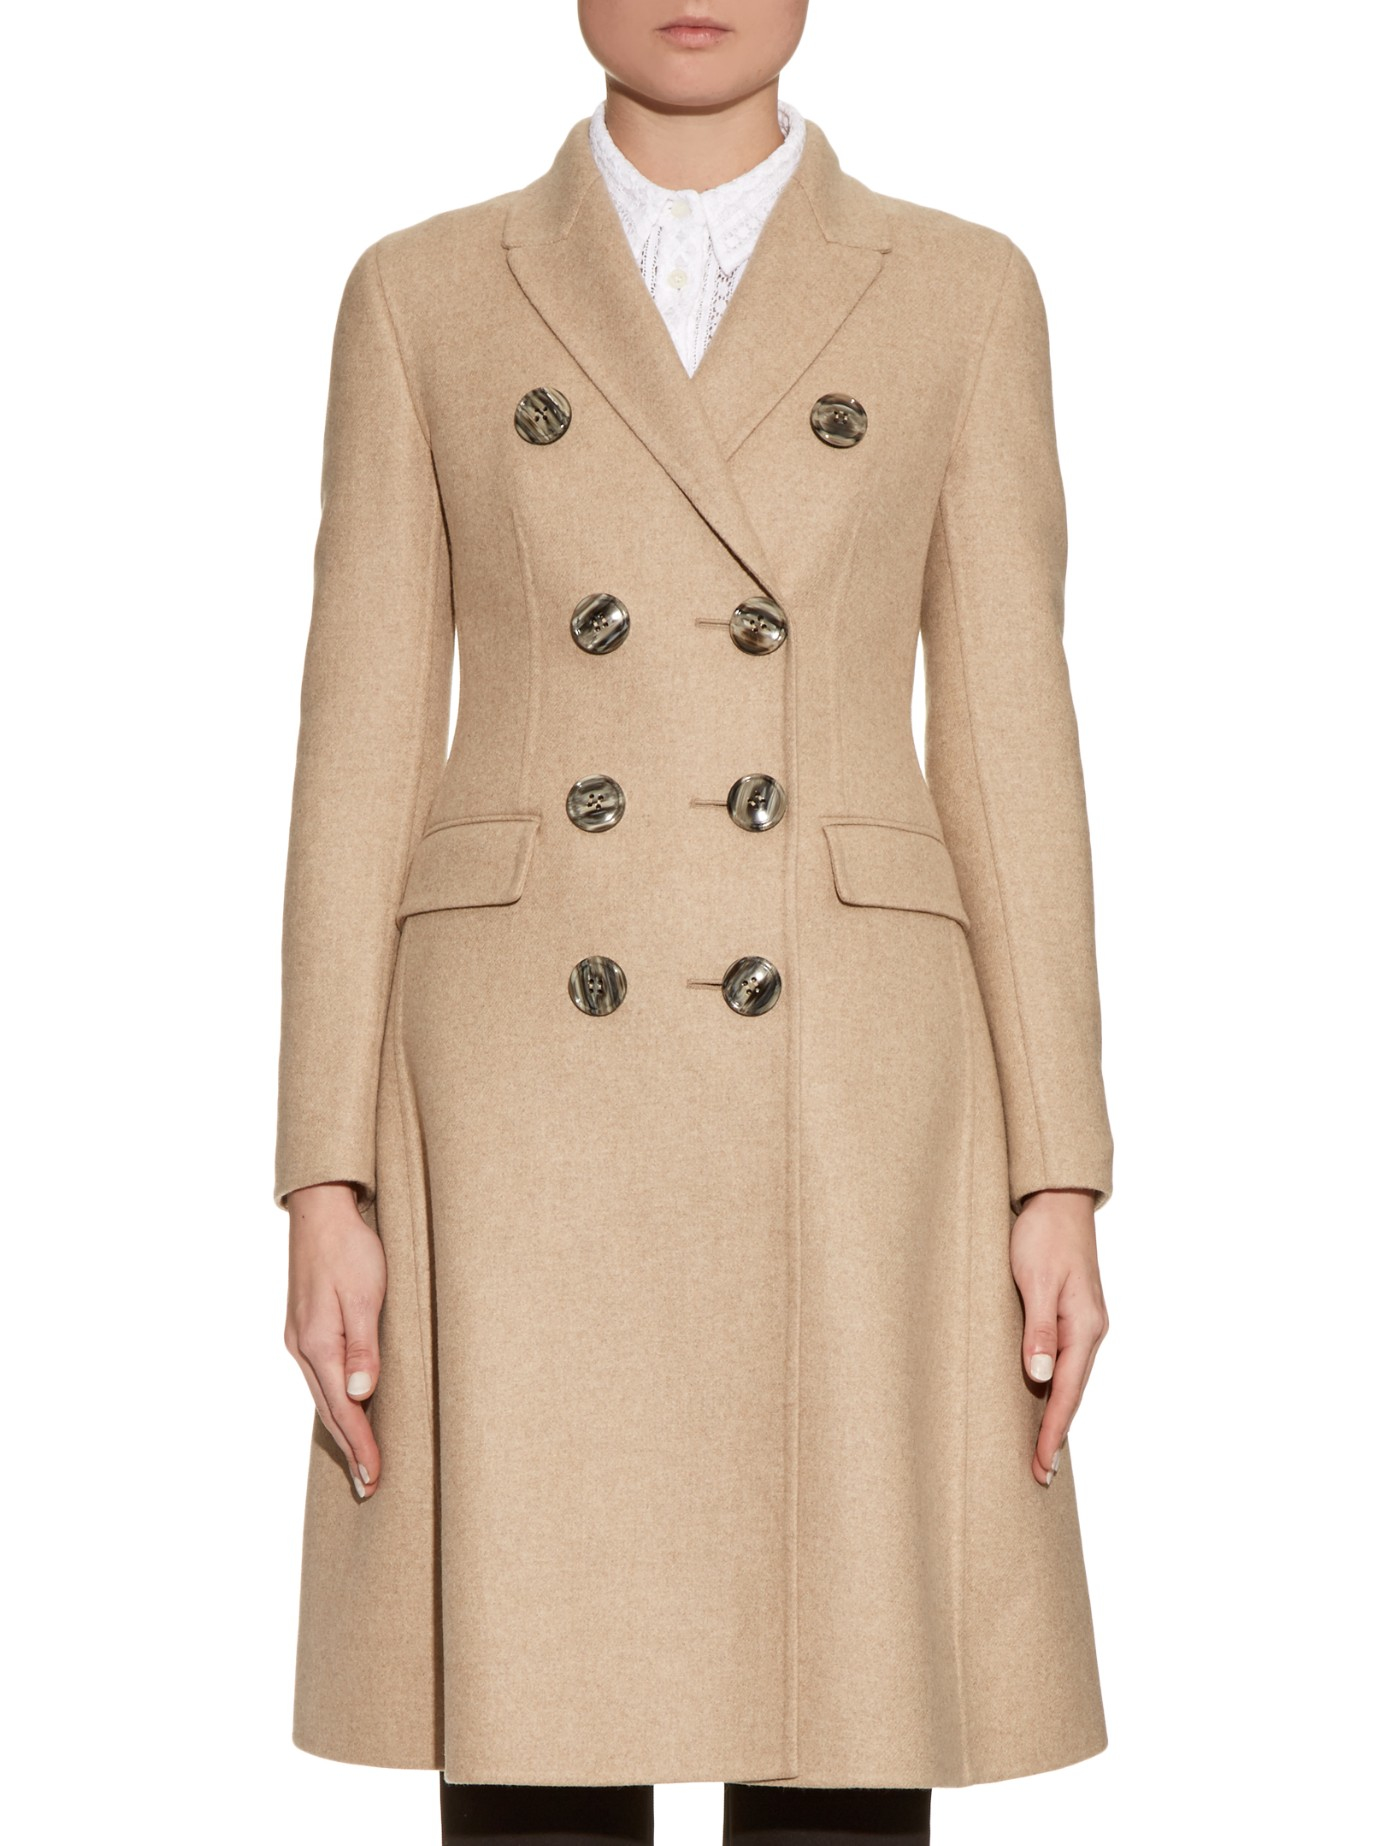 Burberry prorsum Double-breasted Cashmere Coat in Natural | Lyst